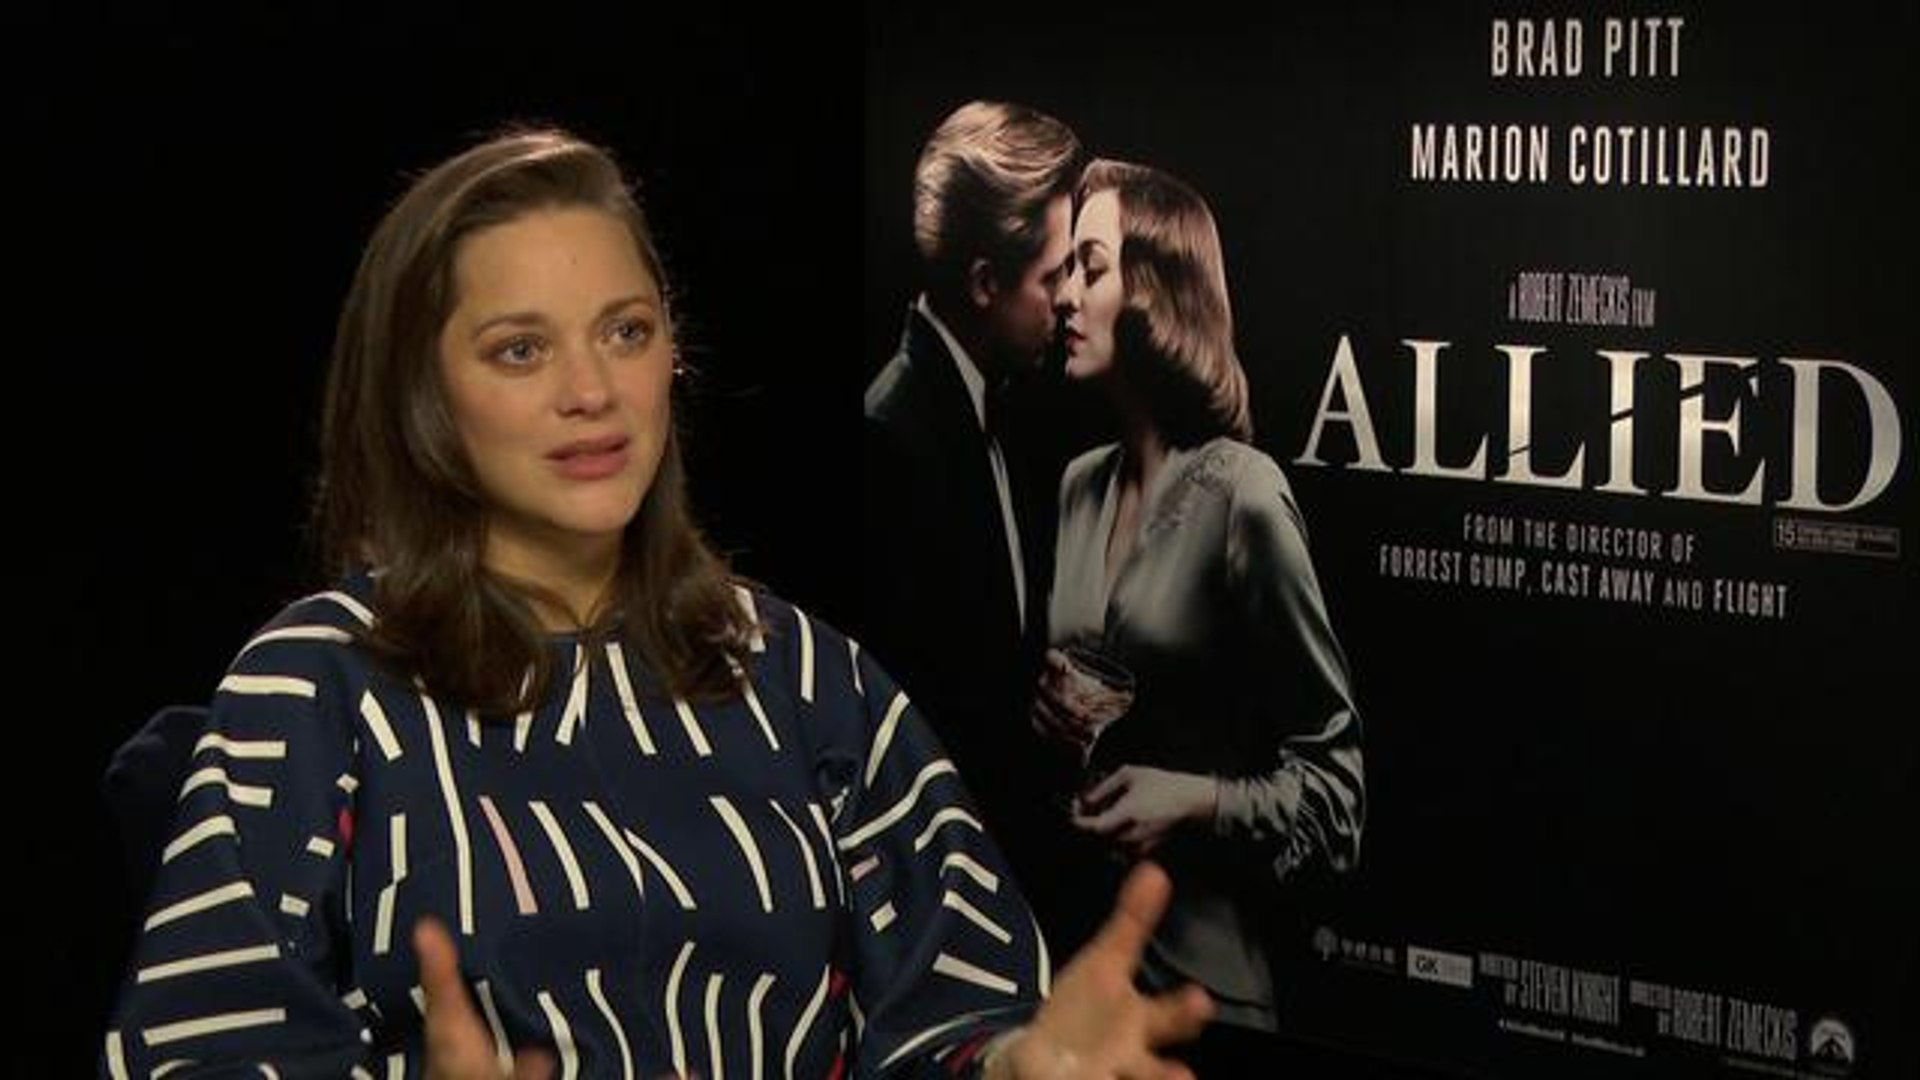 Marion Cotillard On Starring With Brad Pitt In Allied Chemistry